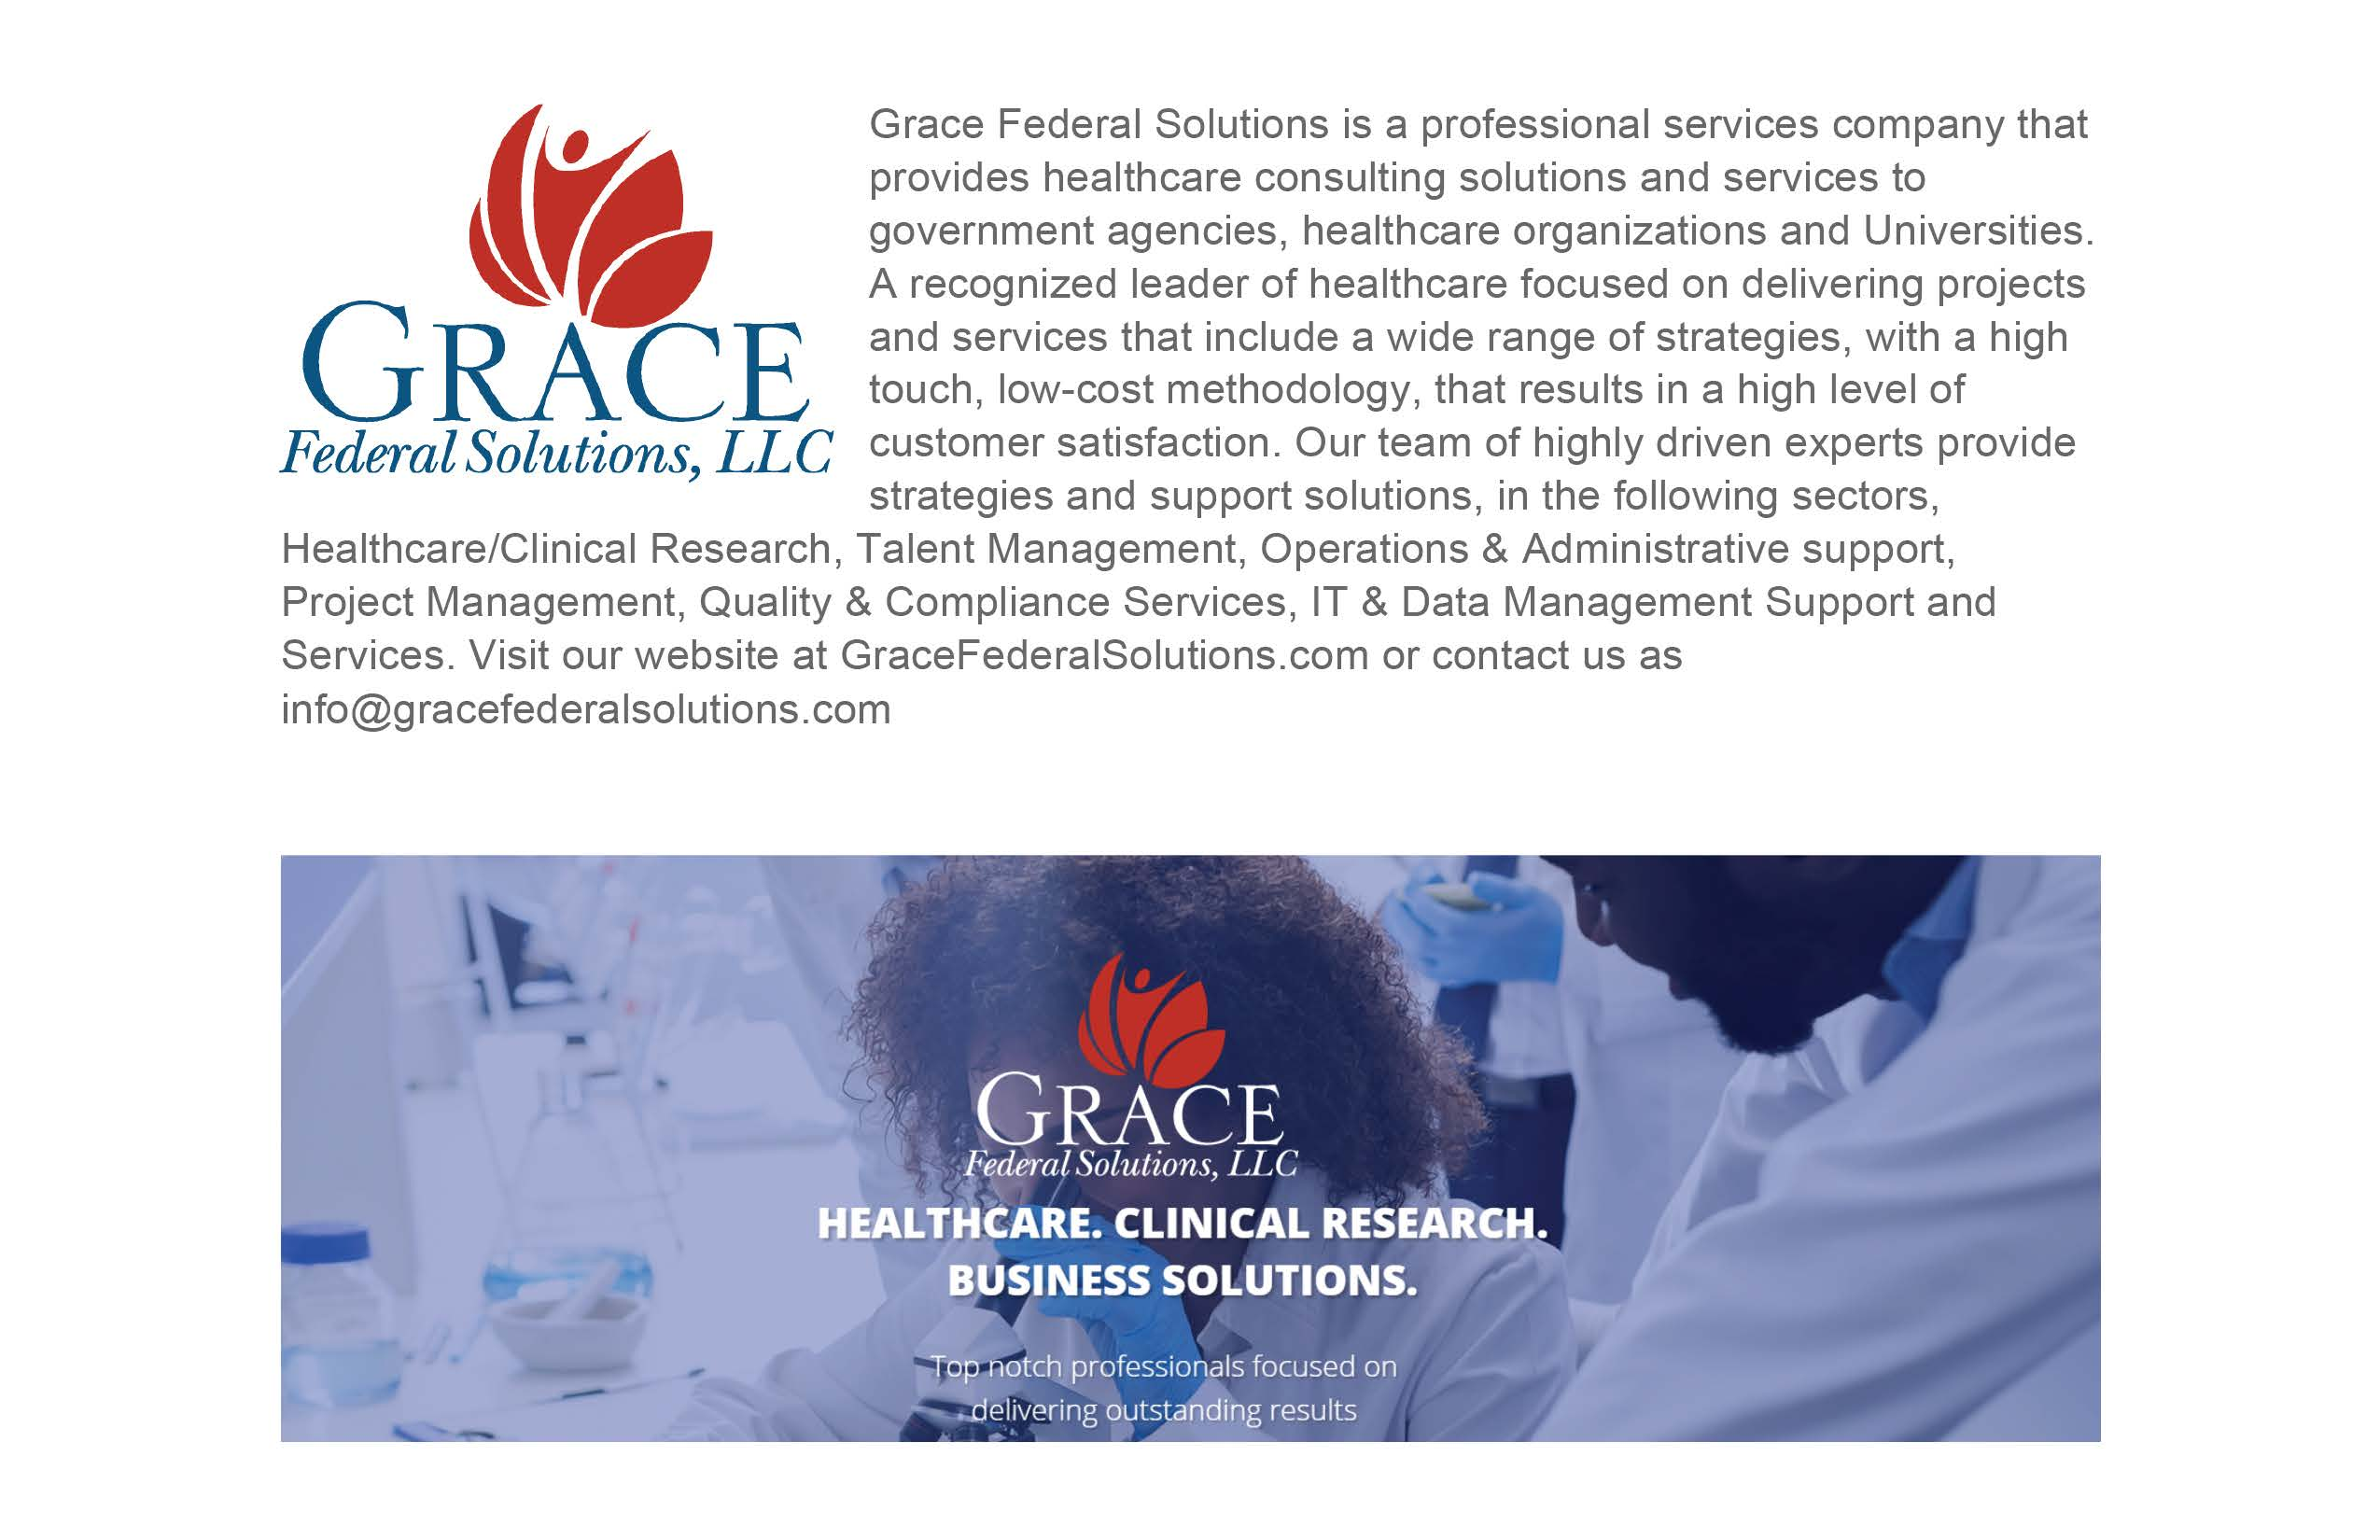 Ad: Grace Federal